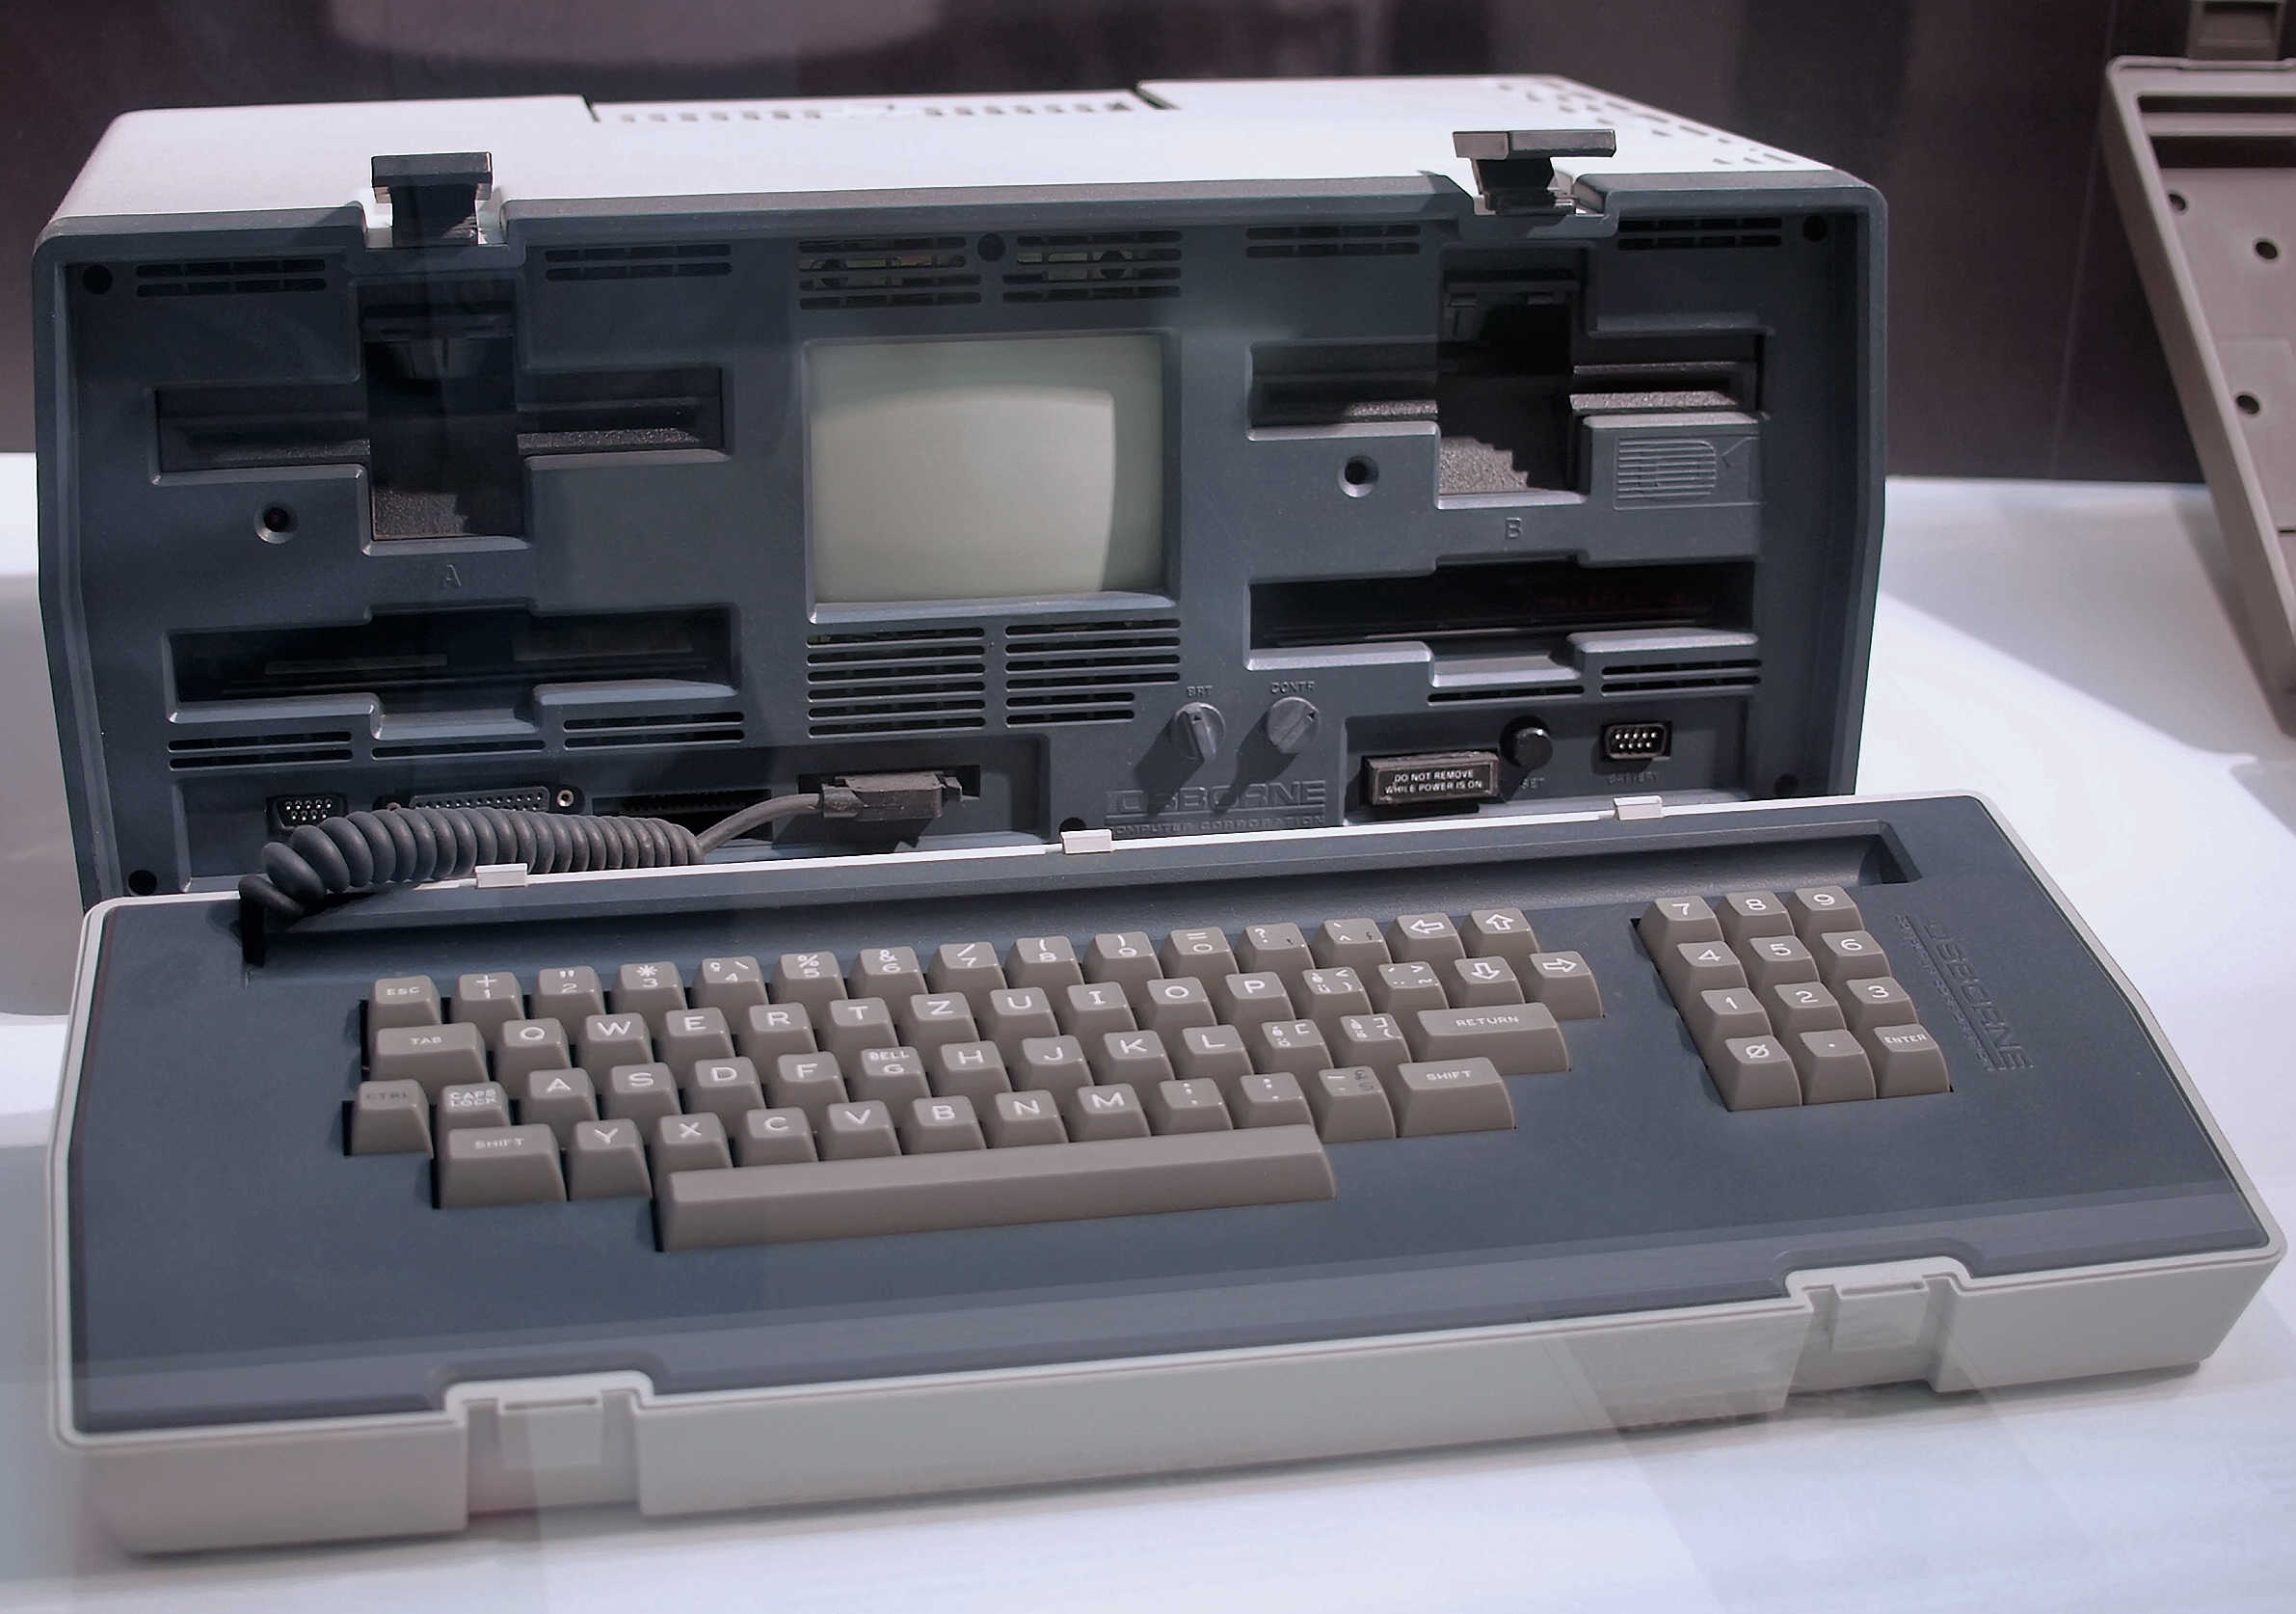 The Osborne 1 portable computer proved ahead of its time.